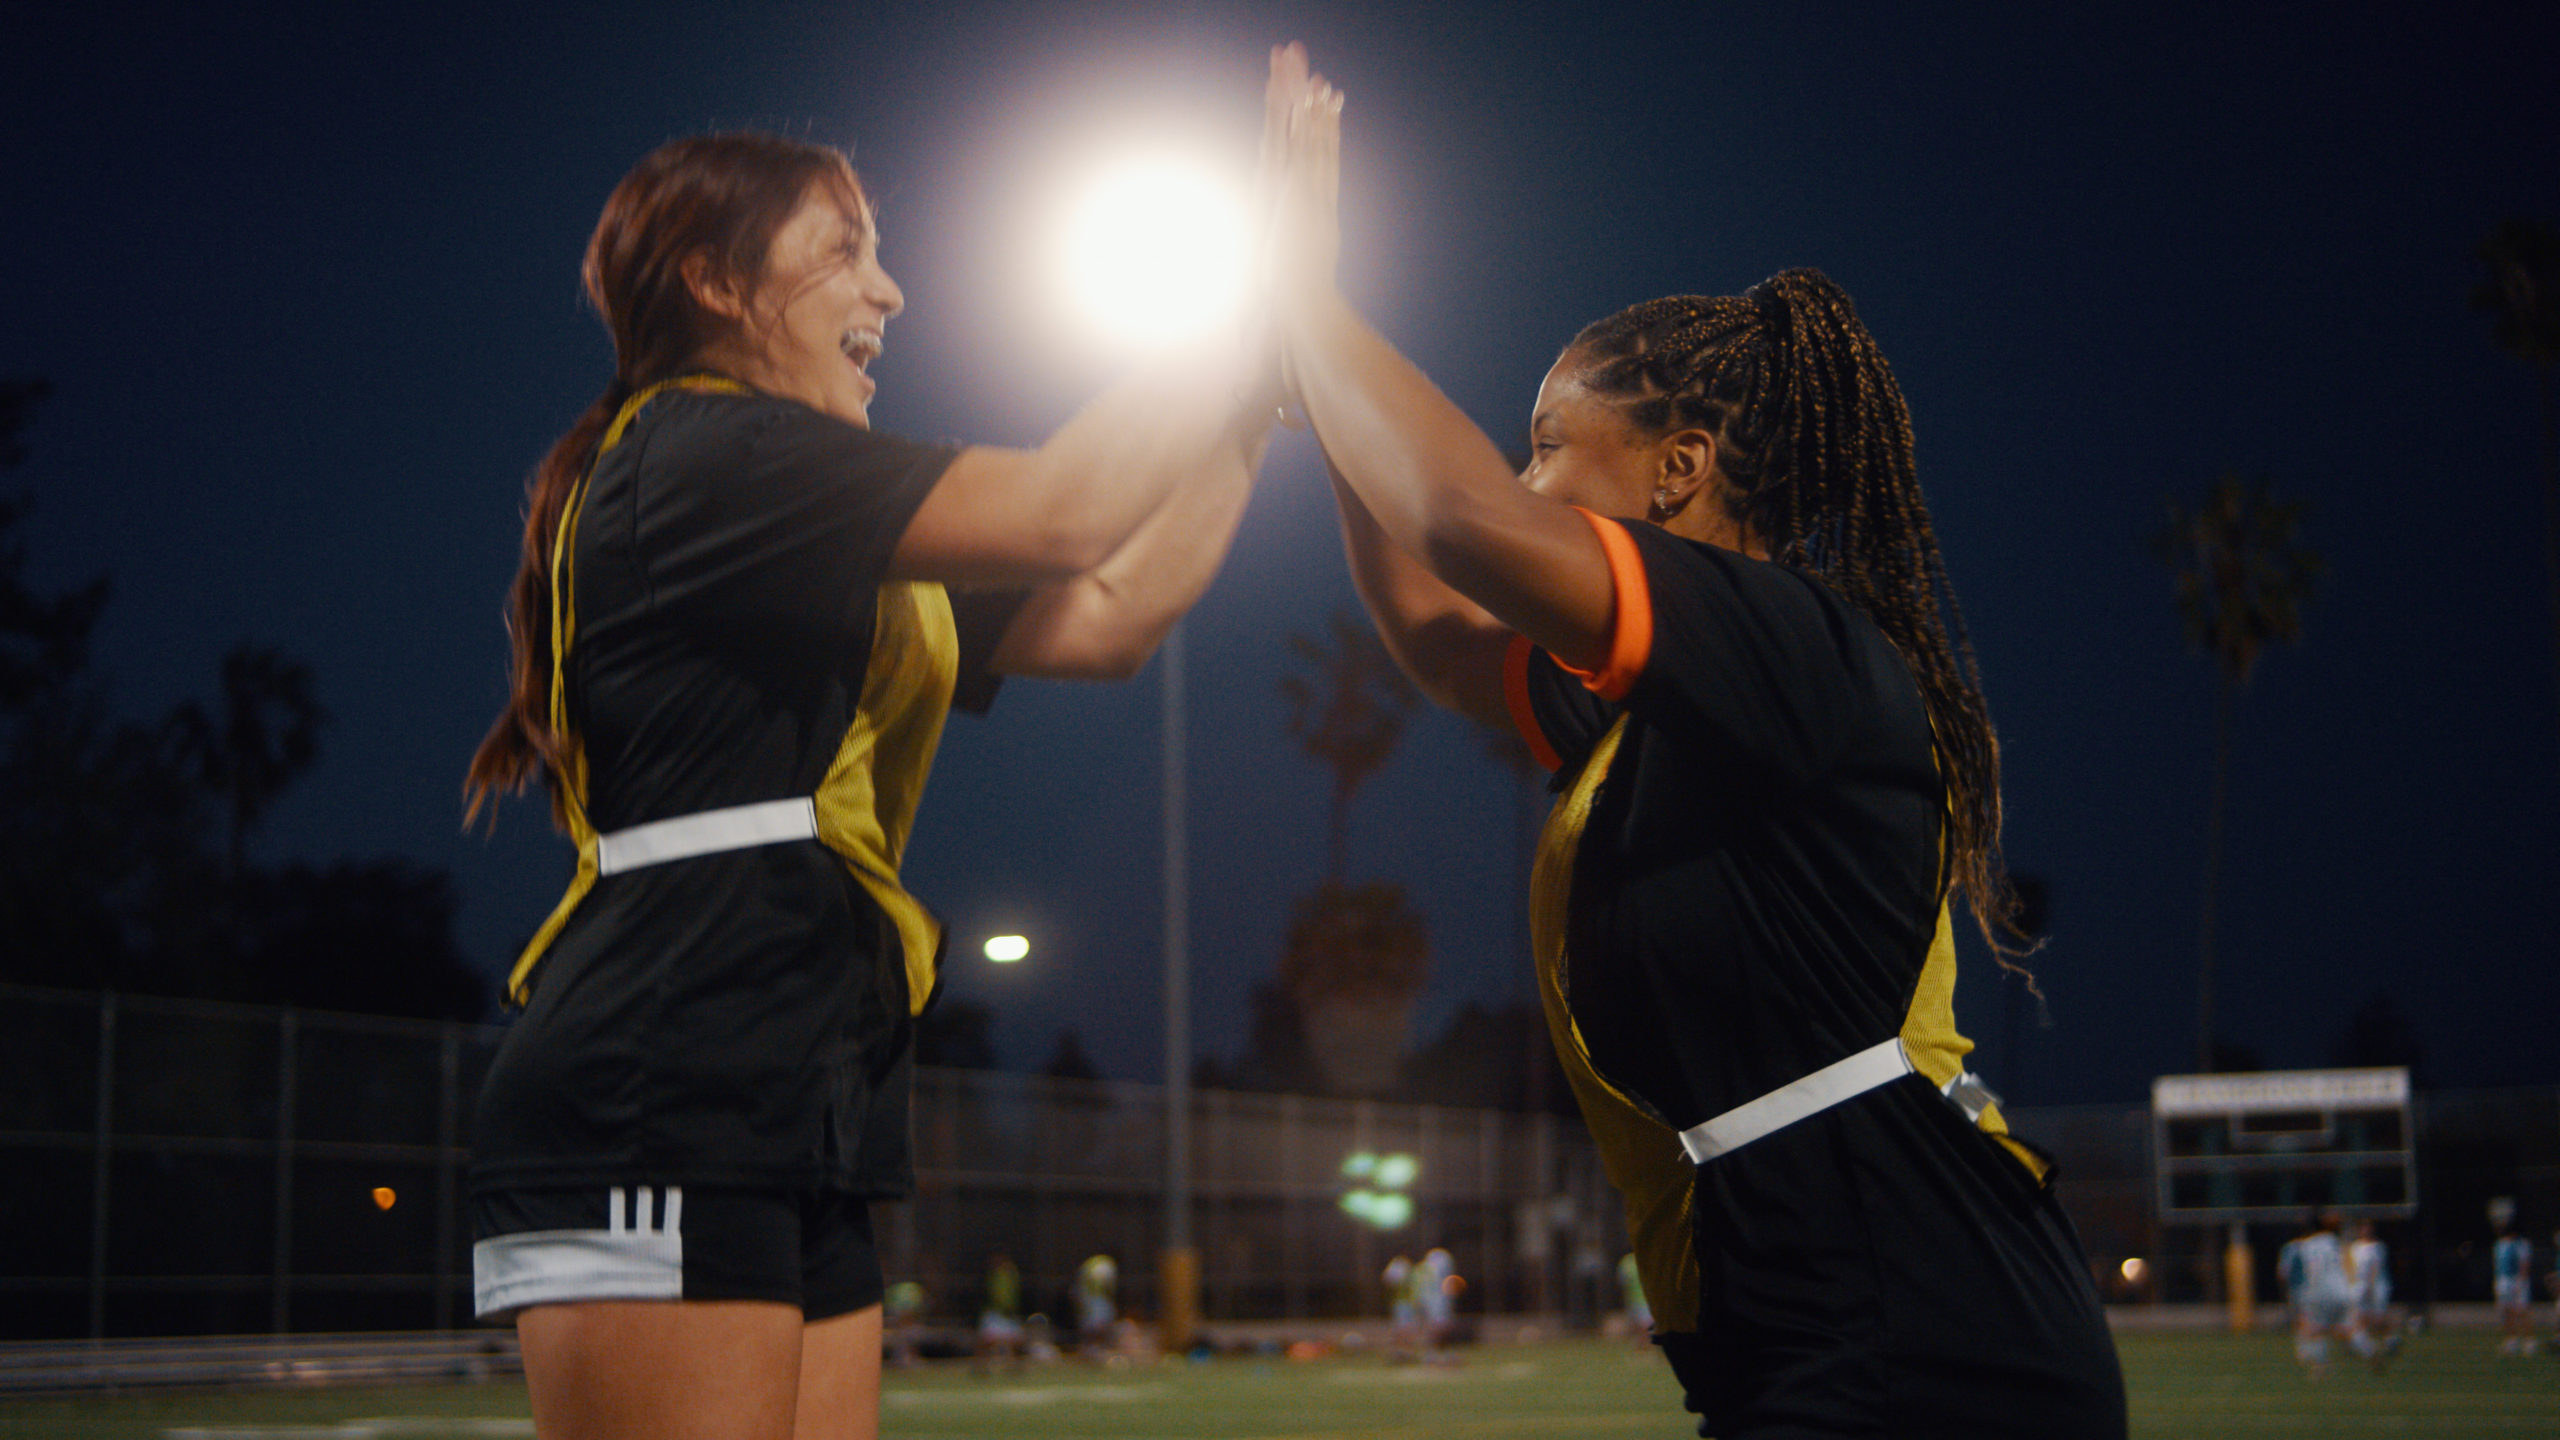 Two female athletes high-fiving